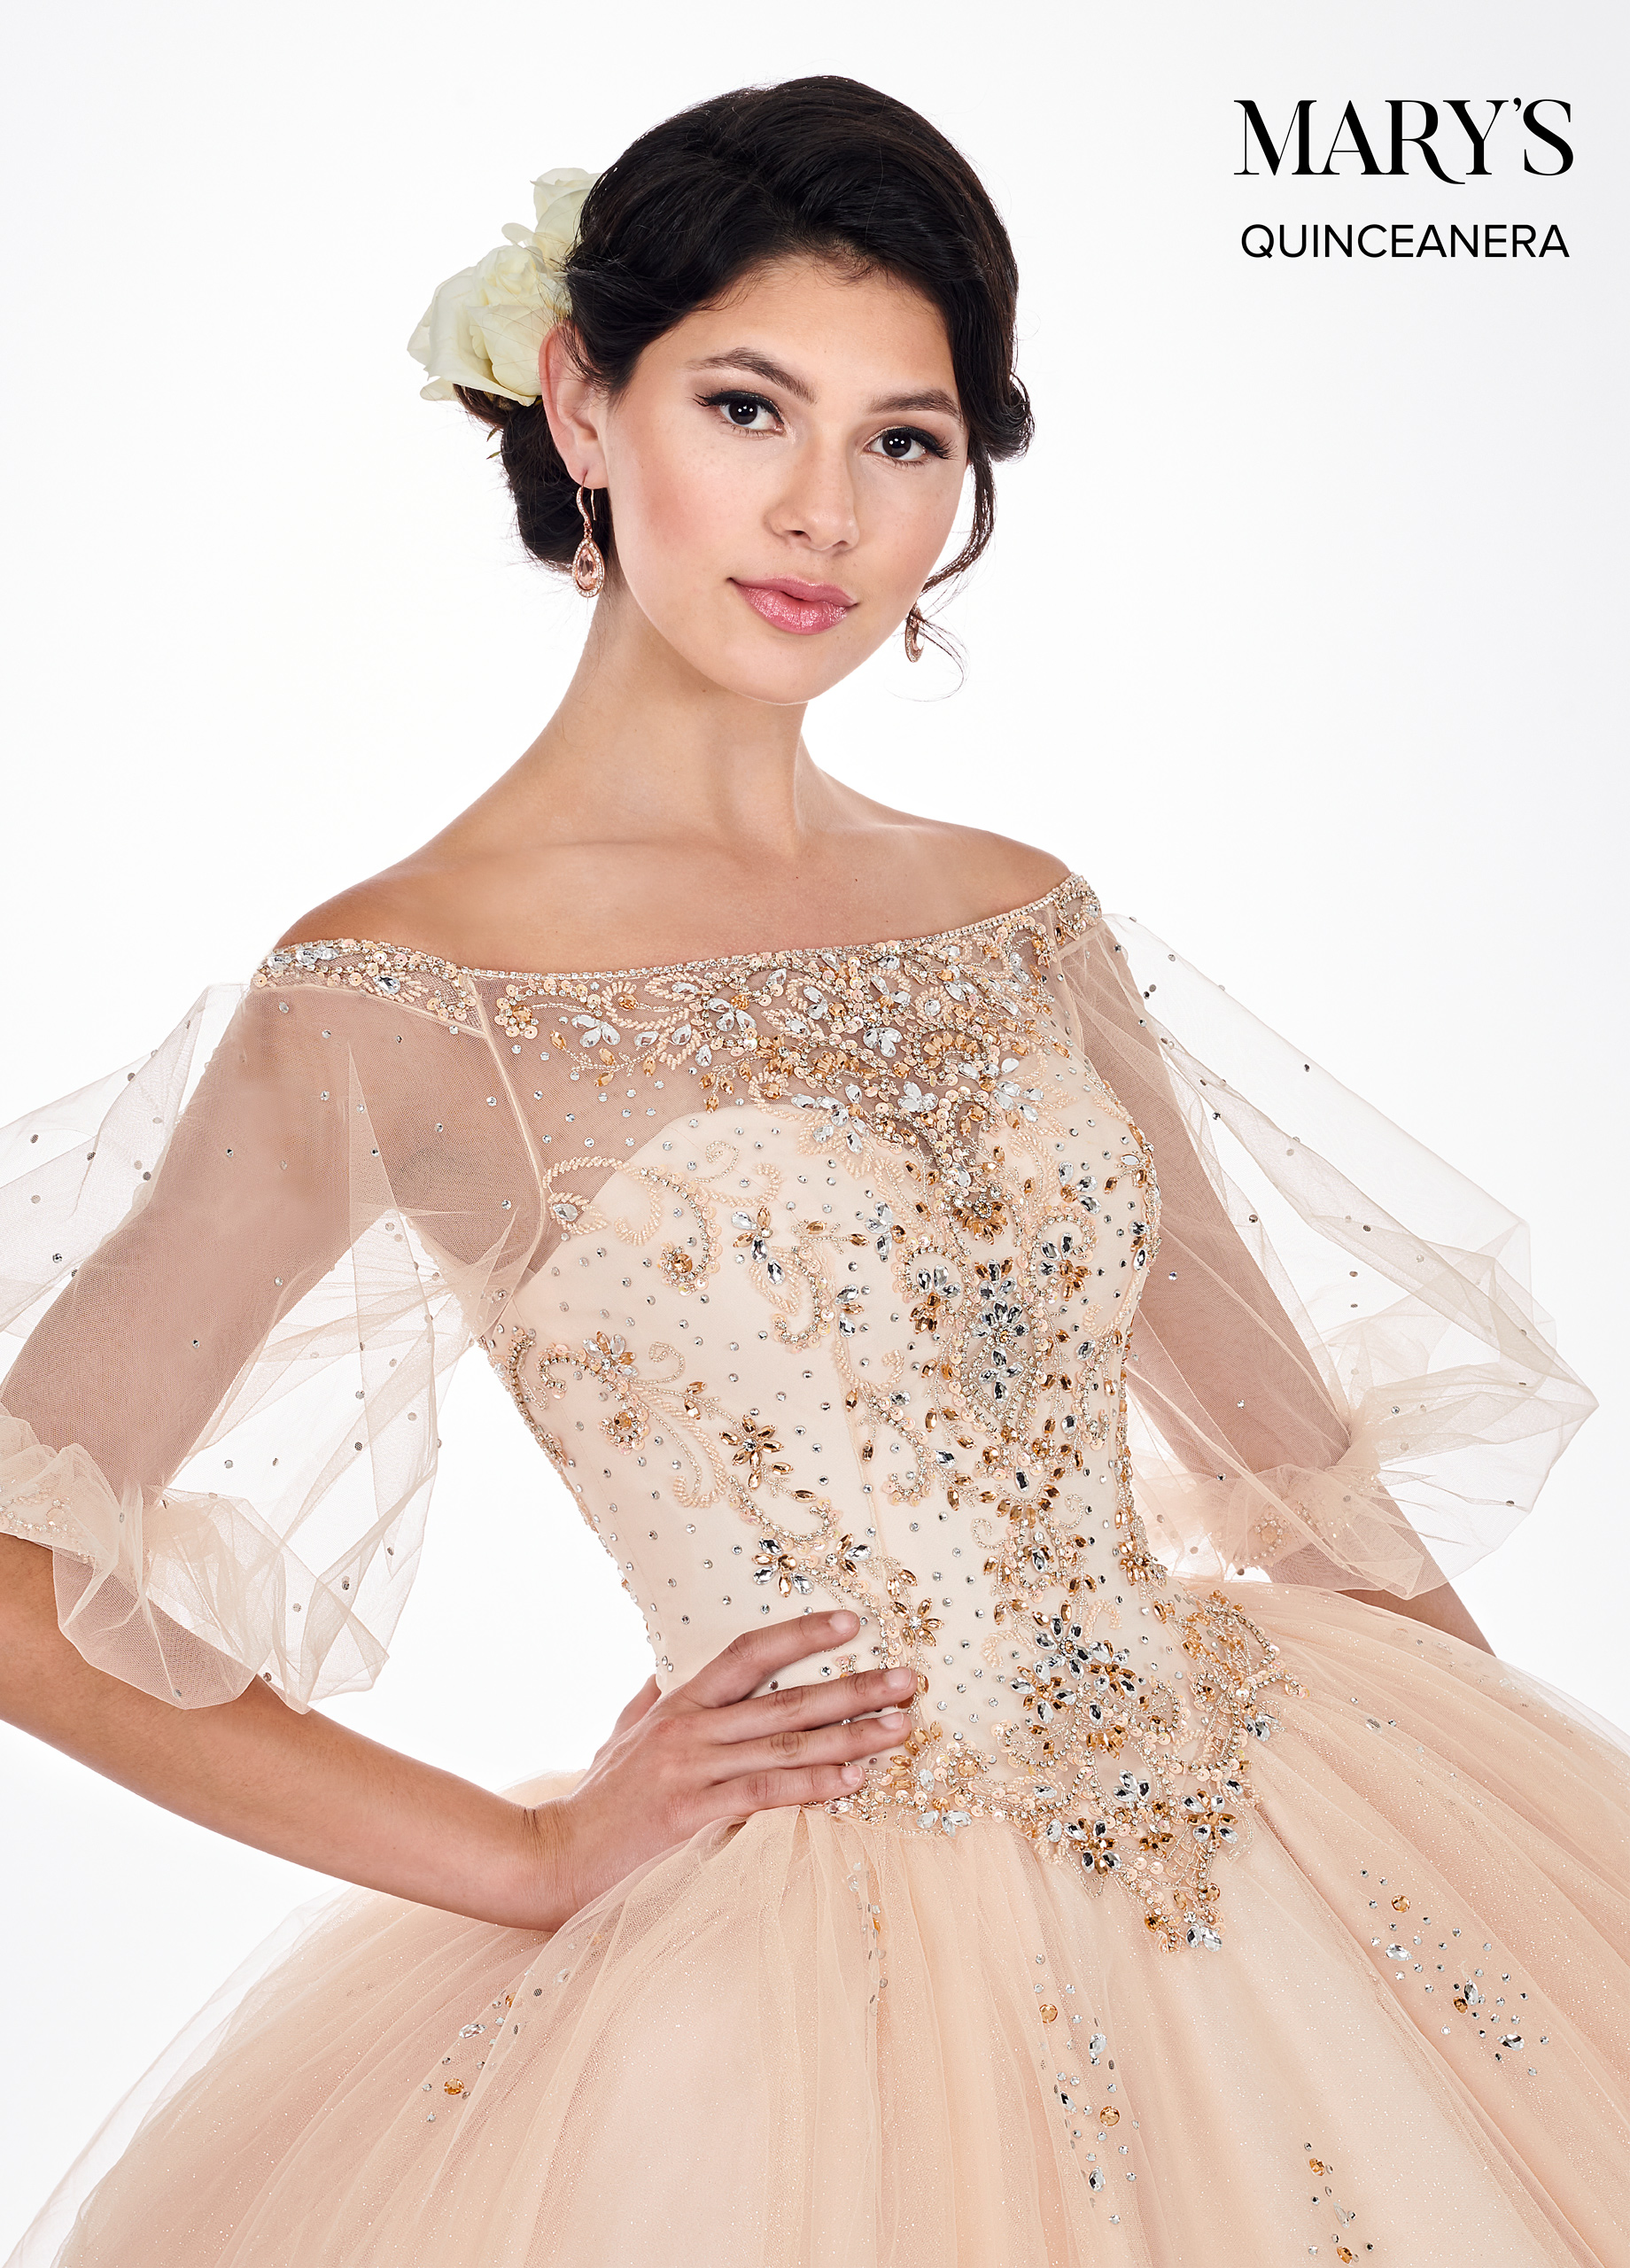 Marys Quinceanera Dresses | Mary's Quinceanera | Style - MQ2058